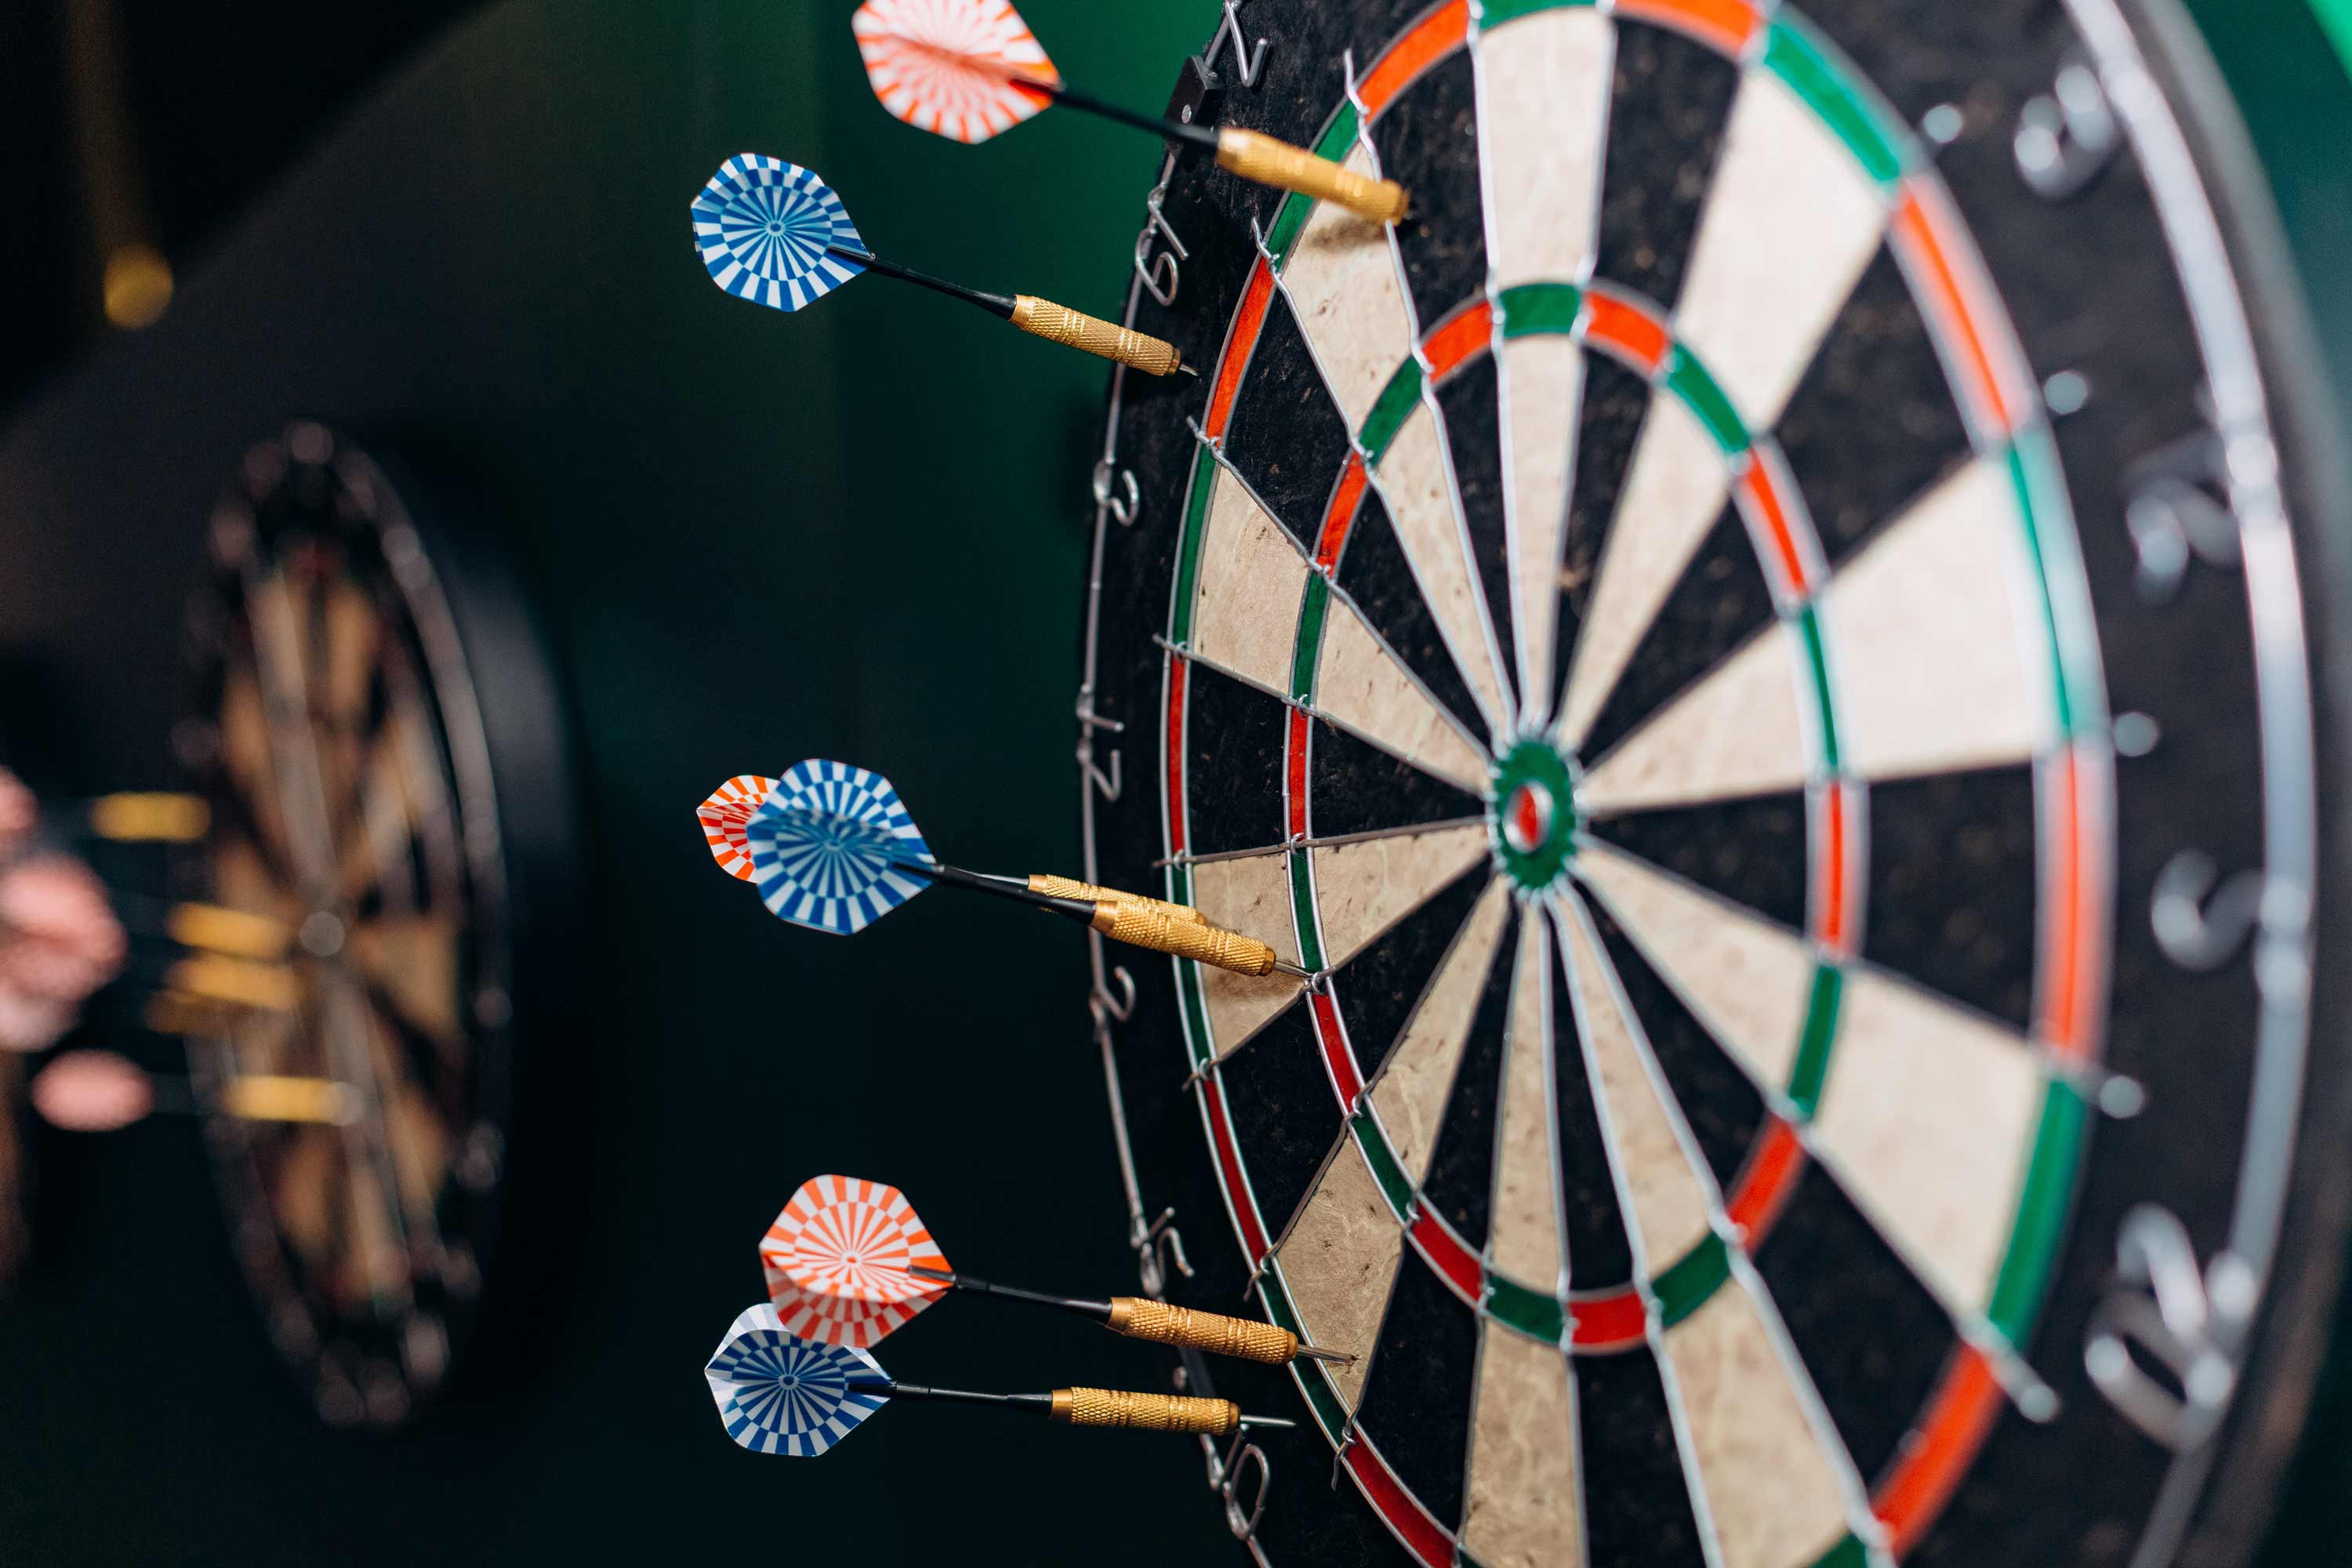 Dart board with darts sticking into the outer circle—no bullseye hits